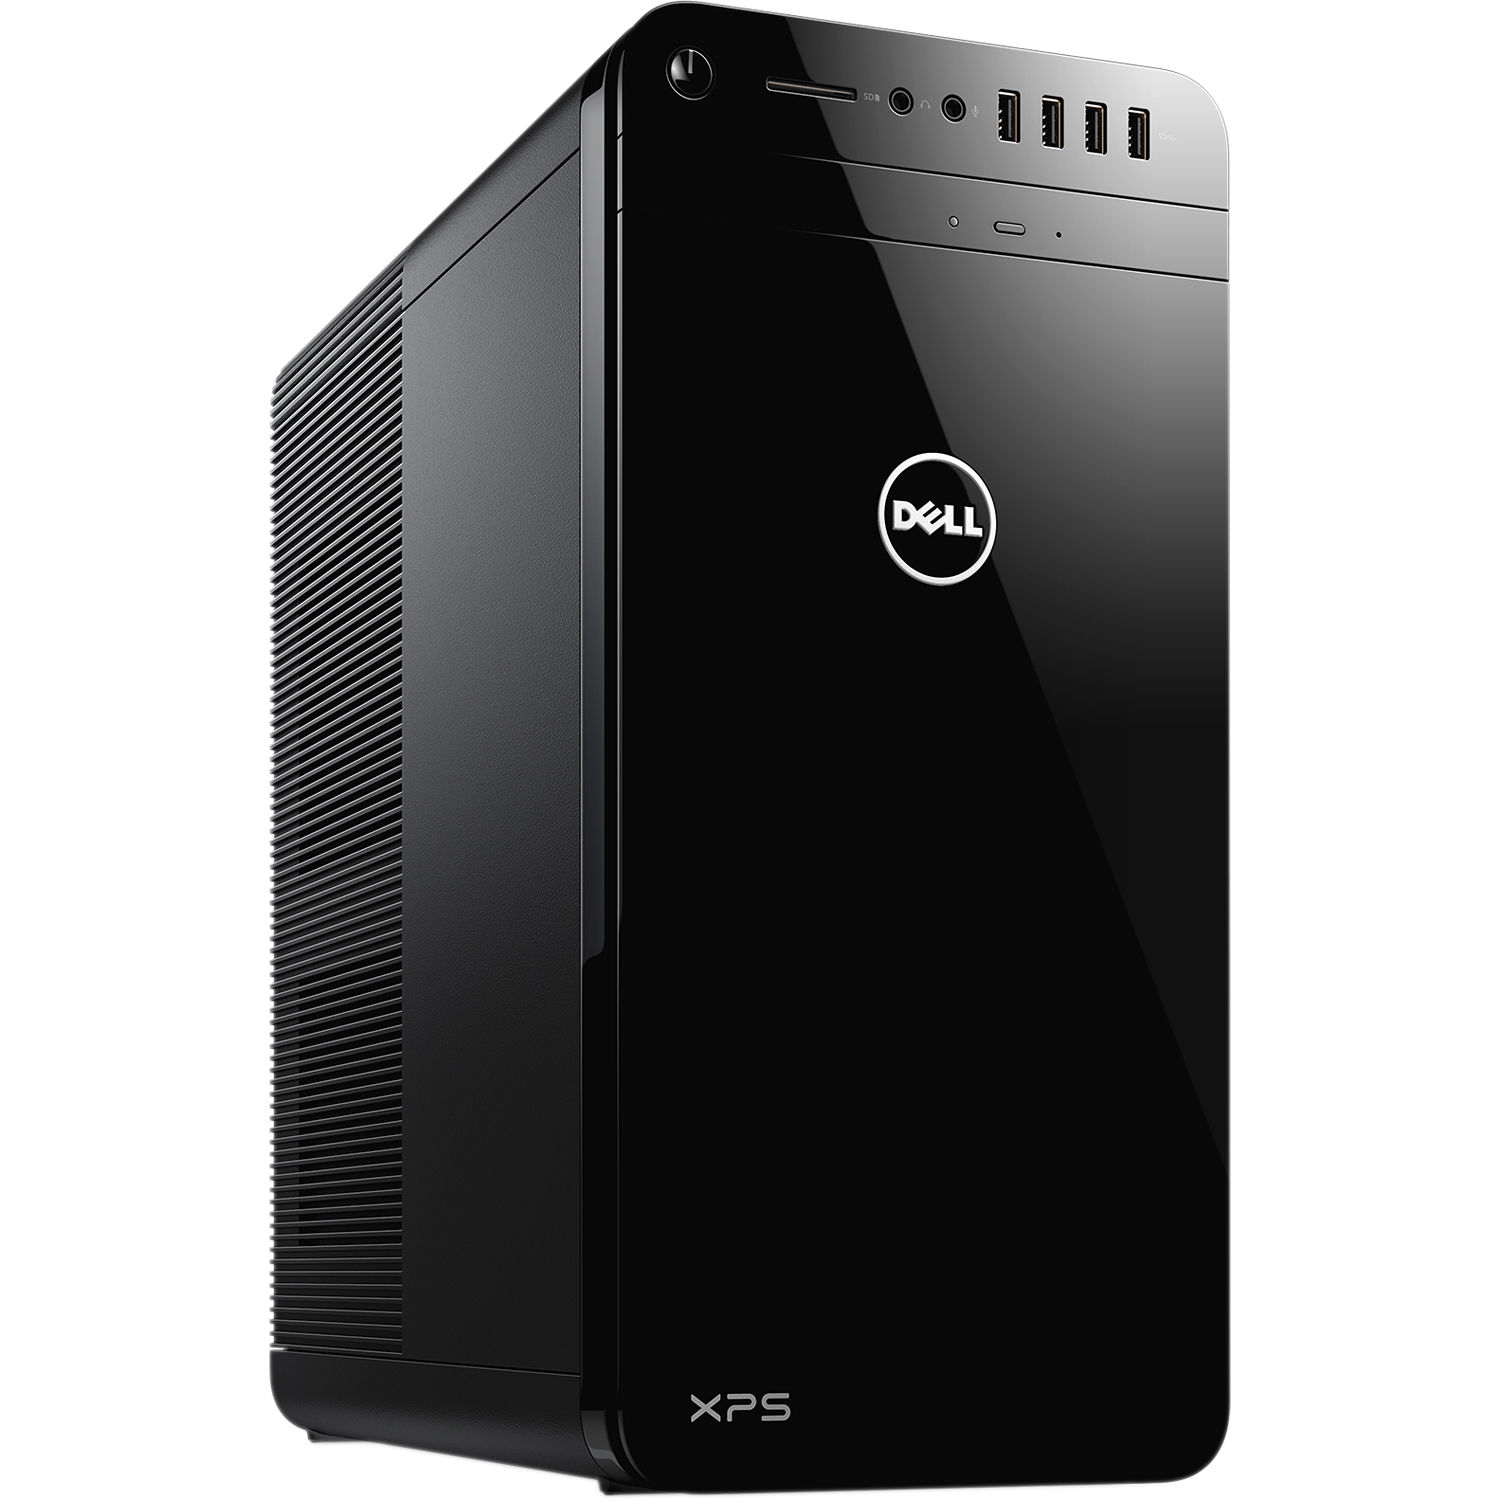 dell xps 8910 desktop computer xps8910 3020blk b h photo video rh bhphotovideo com